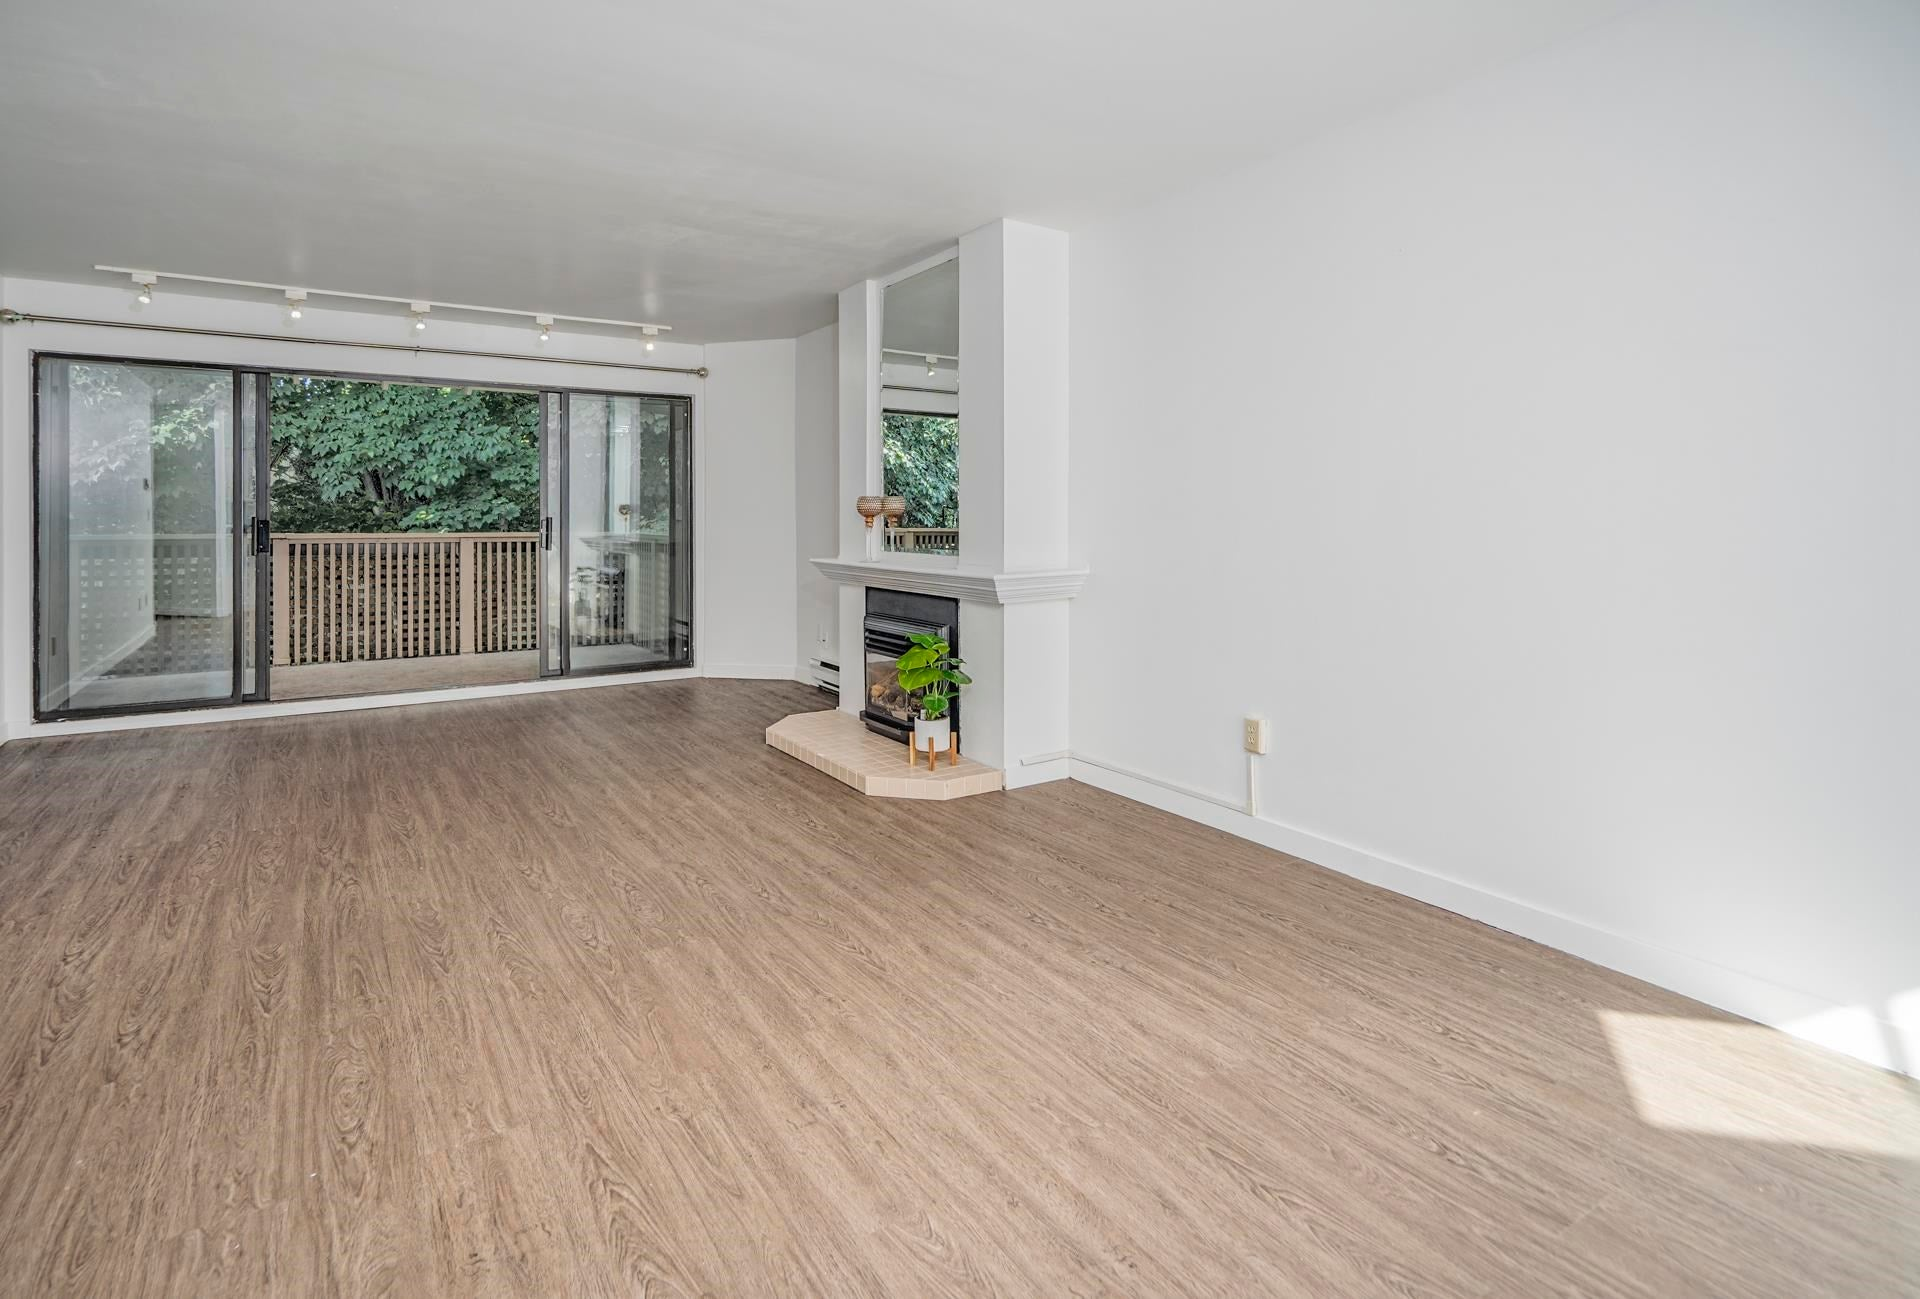 301 3187 MOUNTAIN HIGHWAY - Lynn Valley Apartment/Condo for sale, 2 Bedrooms (R2603681) - #2